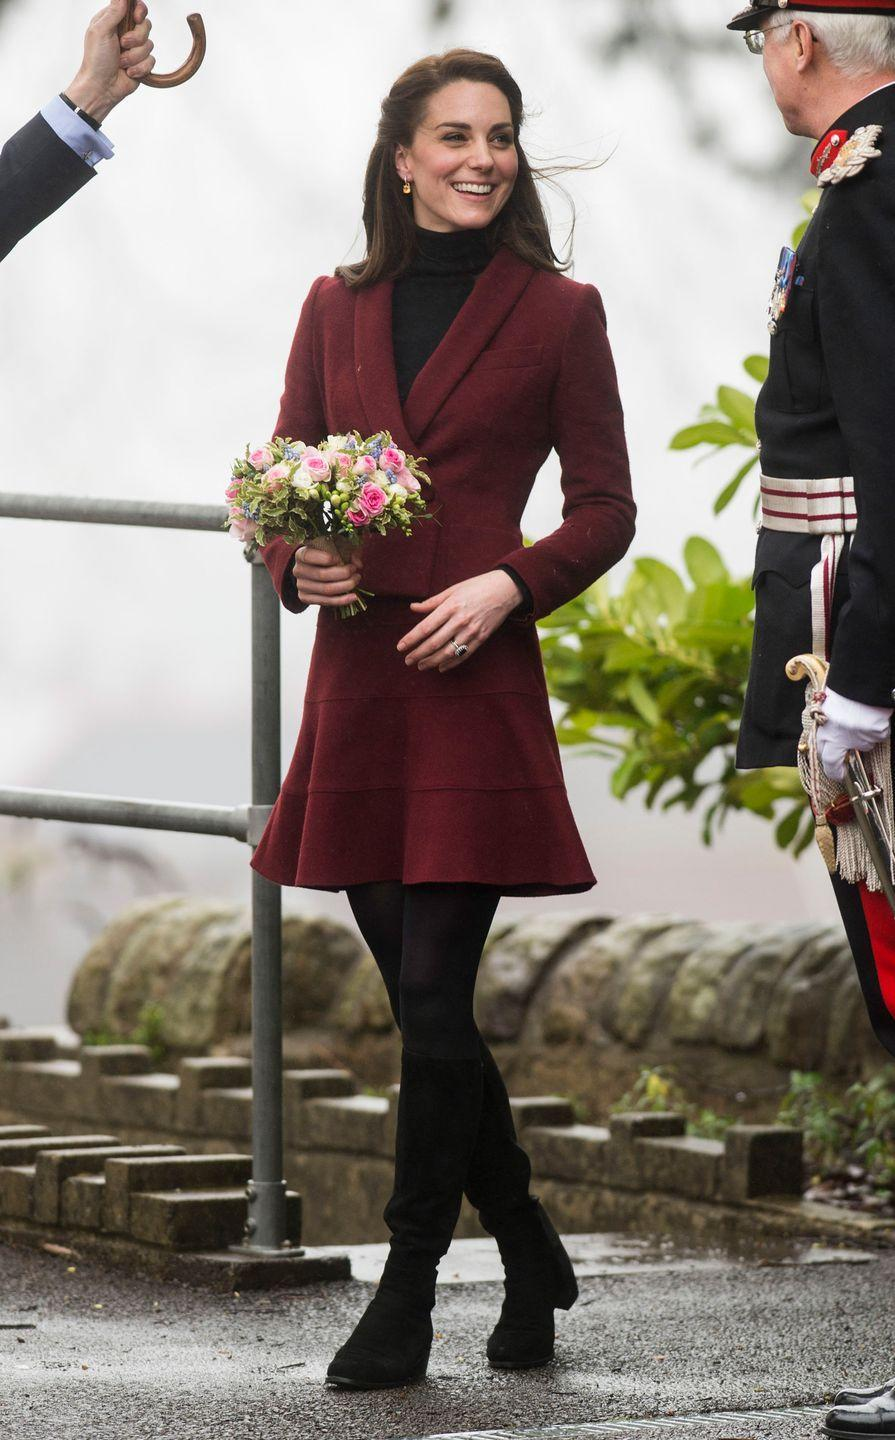 """<p>The Duchess of Cambridge wears a burgundy Paule Ka skirt suit, black tights, and black knee-high <a href=""""https://go.redirectingat.com?id=74968X1596630&url=https%3A%2F%2Fwww.bloomingdales.com%2Fshop%2Fproduct%2Fstuart-weitzman-reserve-suede-over-the-knee-boots%3FID%3D731345%26CategoryID%3D16961%26LinkType%3Dprodrec_pdpza%26choiceId%3D%2540H6%2540Customers%2BAlso%2BViewed%253Ca%2Bhref%253D&sref=https%3A%2F%2Fwww.townandcountrymag.com%2Fstyle%2Ffashion-trends%2Fnews%2Fg1633%2Fkate-middleton-fashion%2F"""" rel=""""nofollow noopener"""" target=""""_blank"""" data-ylk=""""slk:Stuart Weitzman"""" class=""""link rapid-noclick-resp"""">Stuart Weitzman</a> boots during a visit to Wales.</p>"""